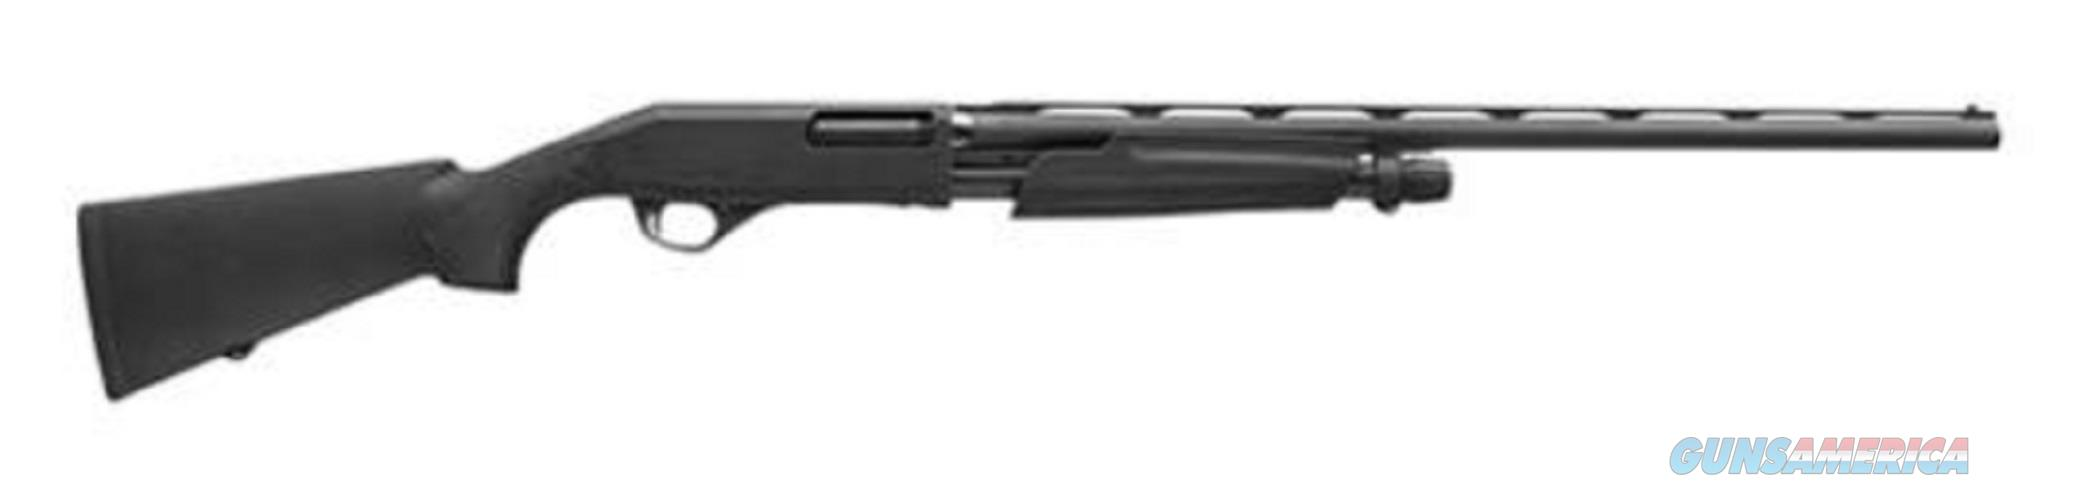 Stoeger P3000 12ga Black 26in 3in  Guns > Shotguns > Stoeger Shotguns